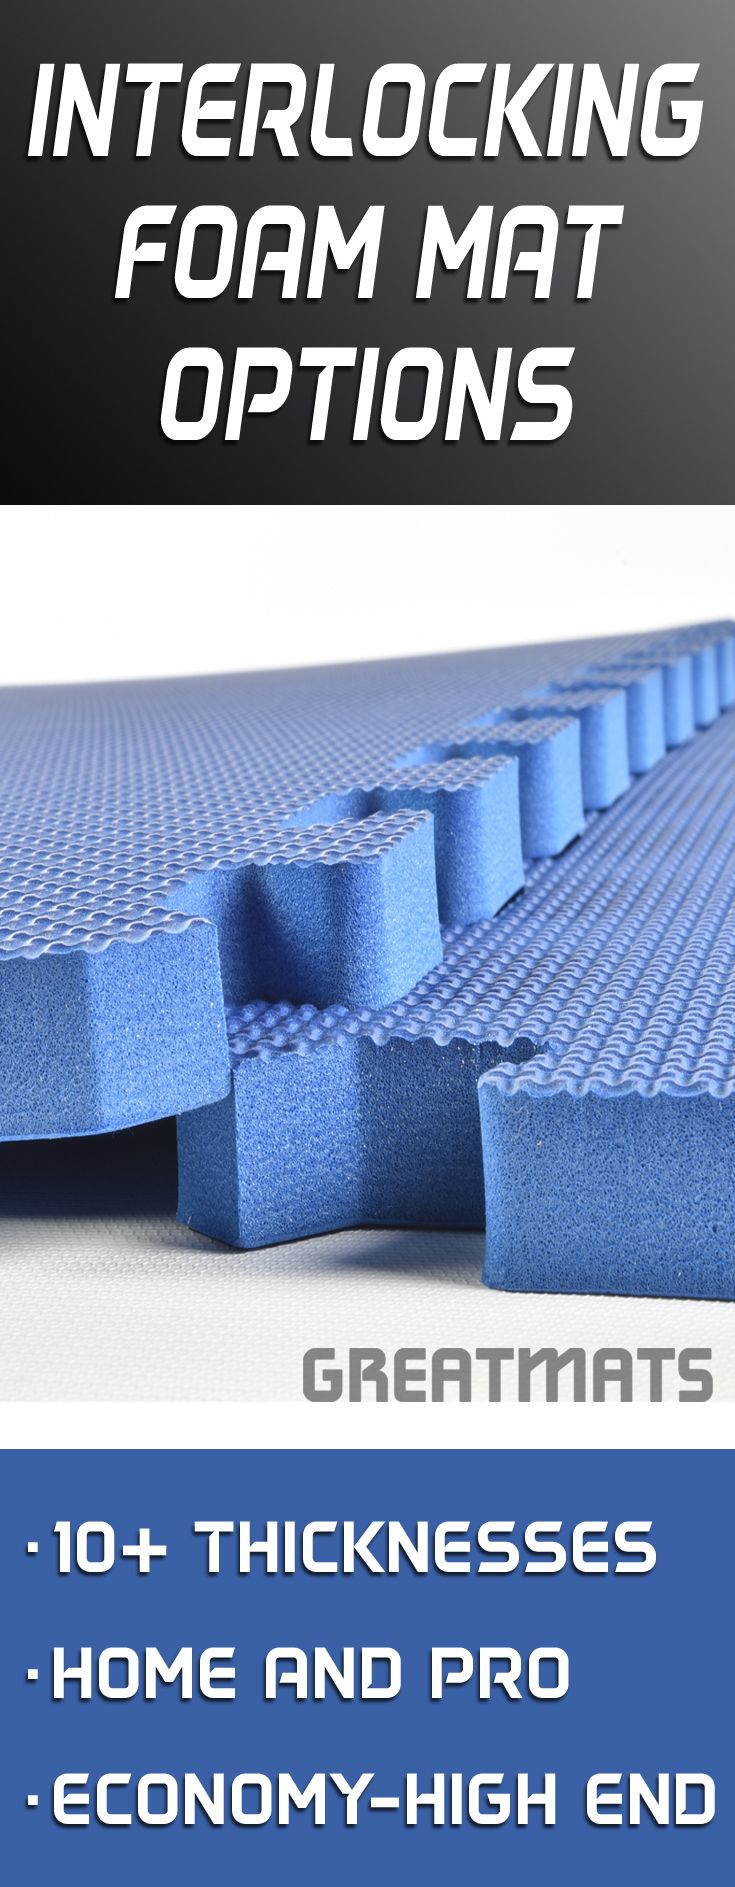 Greatmats offers an extensive selection of home and pro interlocking foam mats.